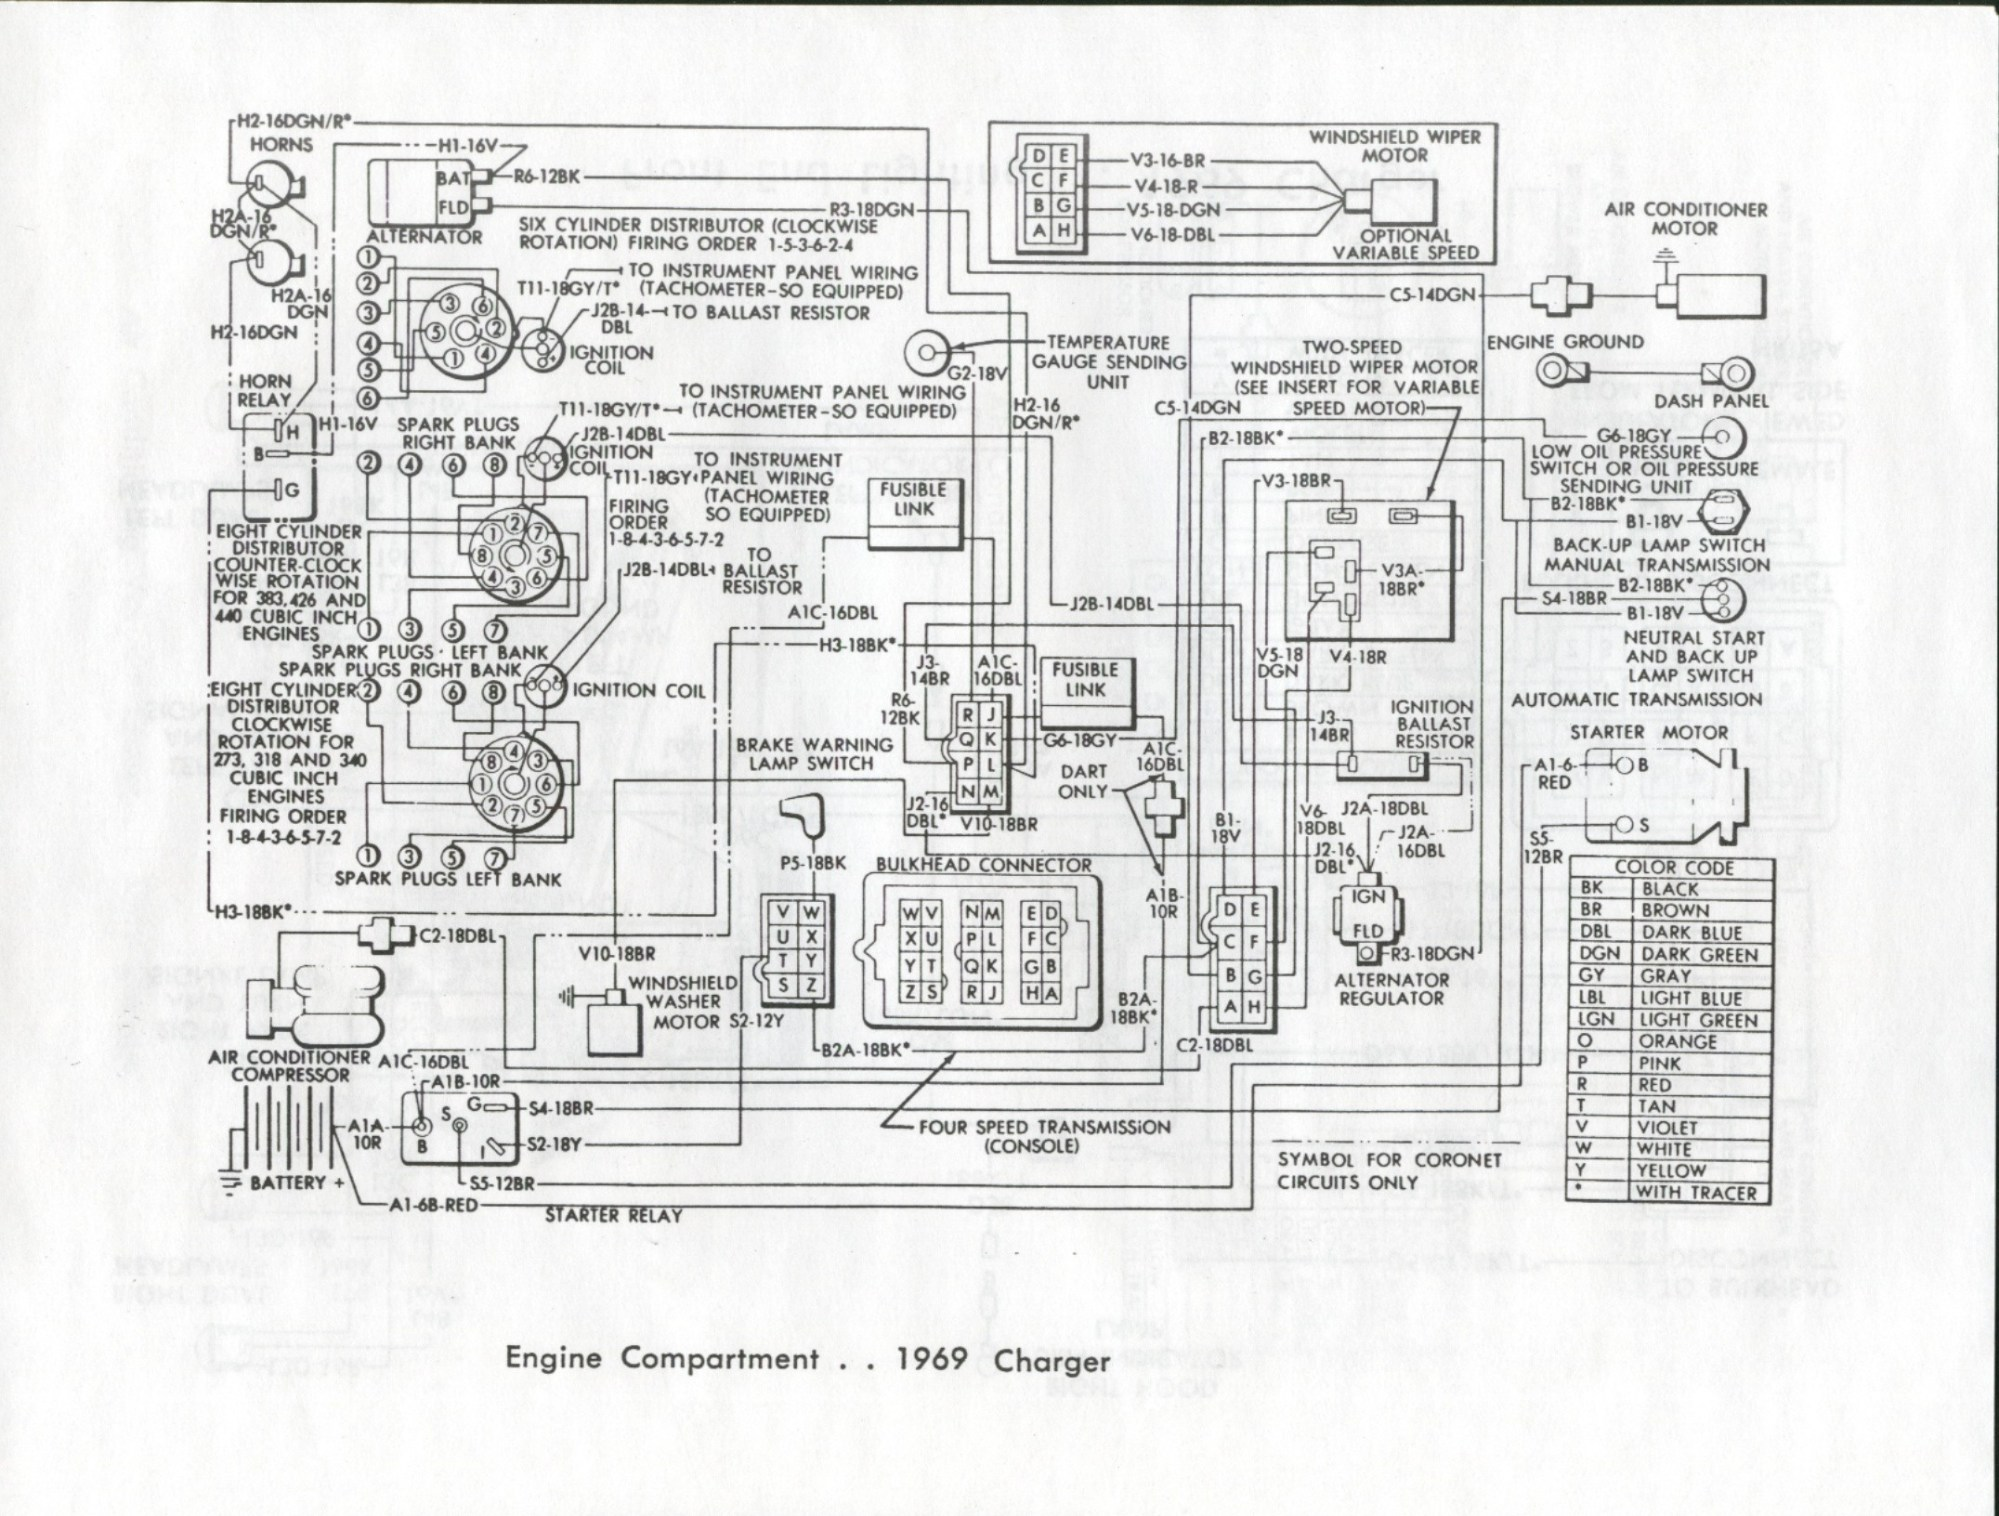 hight resolution of 69 charger wiring diagram wiring diagrams konsult1969 dodge charger 69 charger dash wiring diagram 1969 dodge